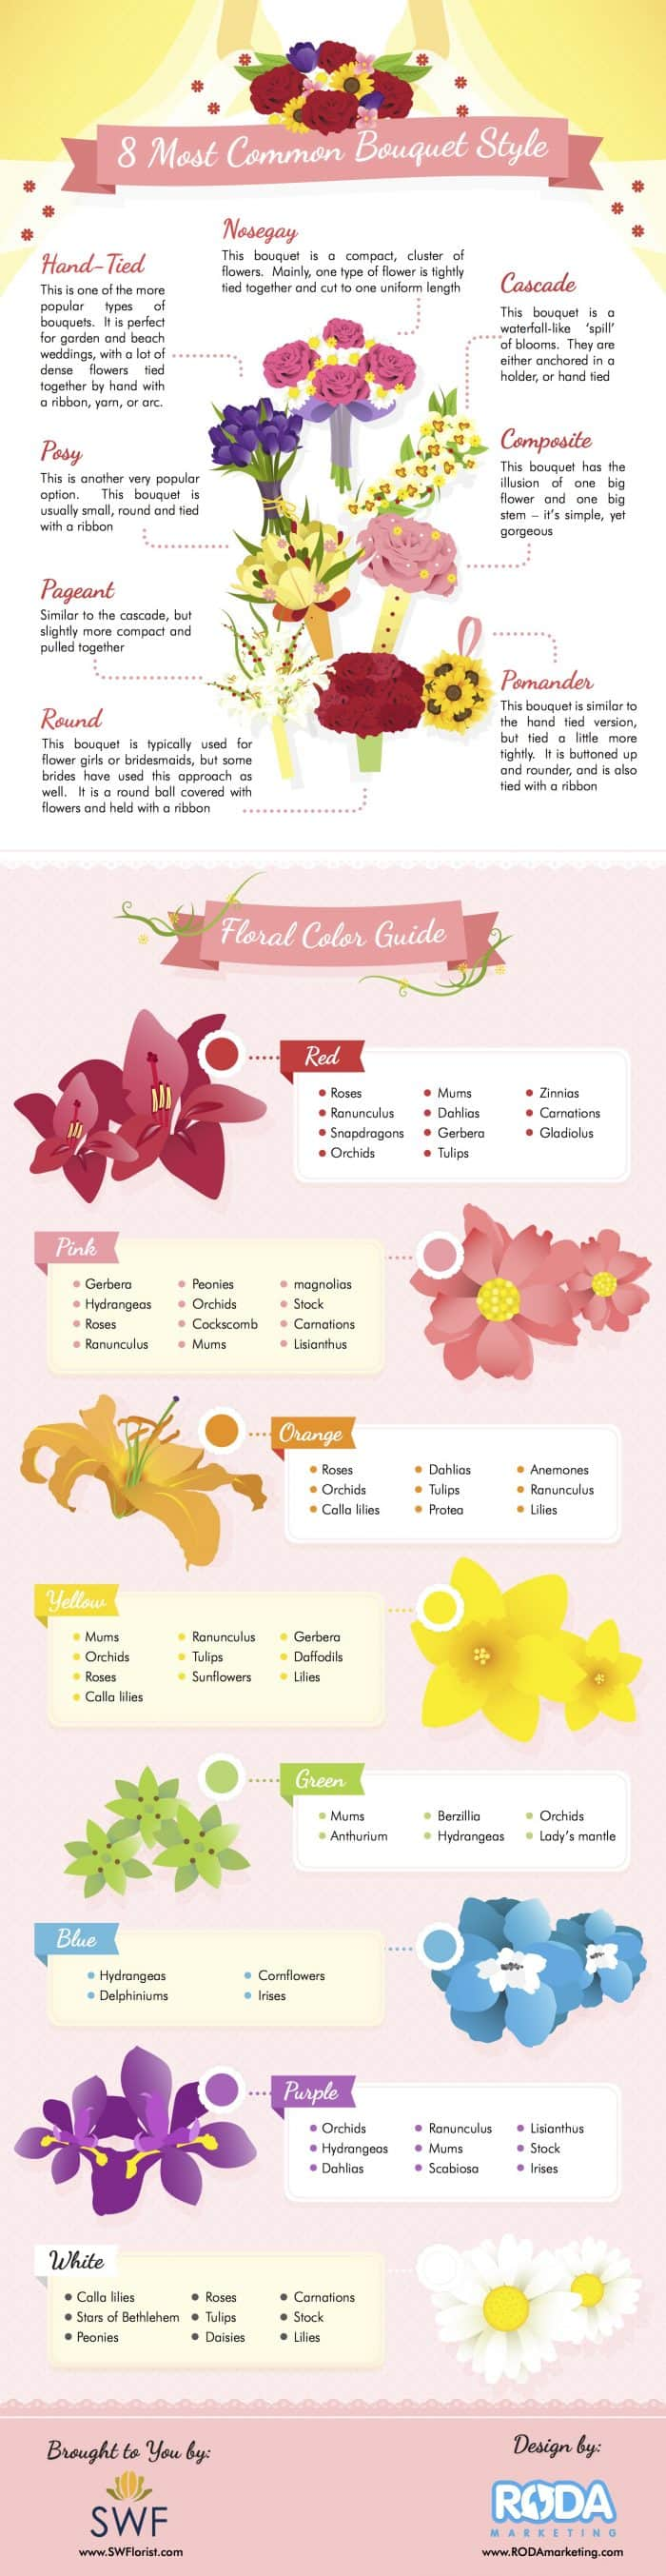 popular bouquet styles and what they can be used for